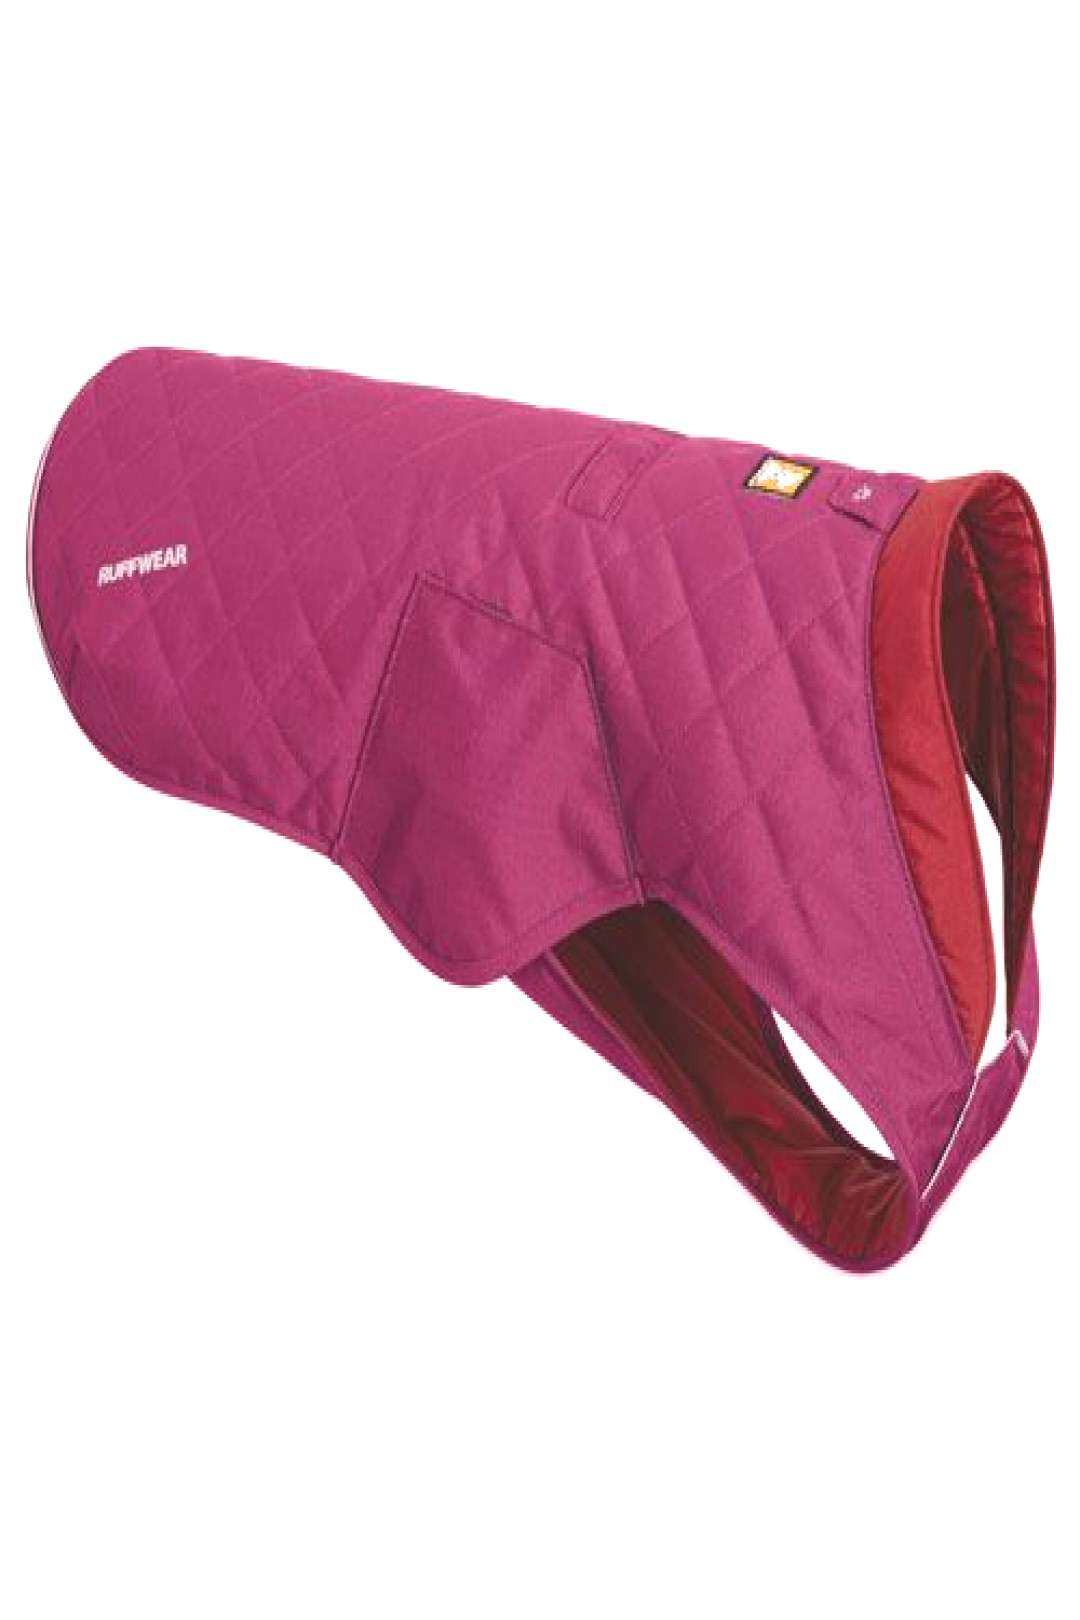 Ruffwear Stumptown Dog Coat, Larkspur Purple, XX Small